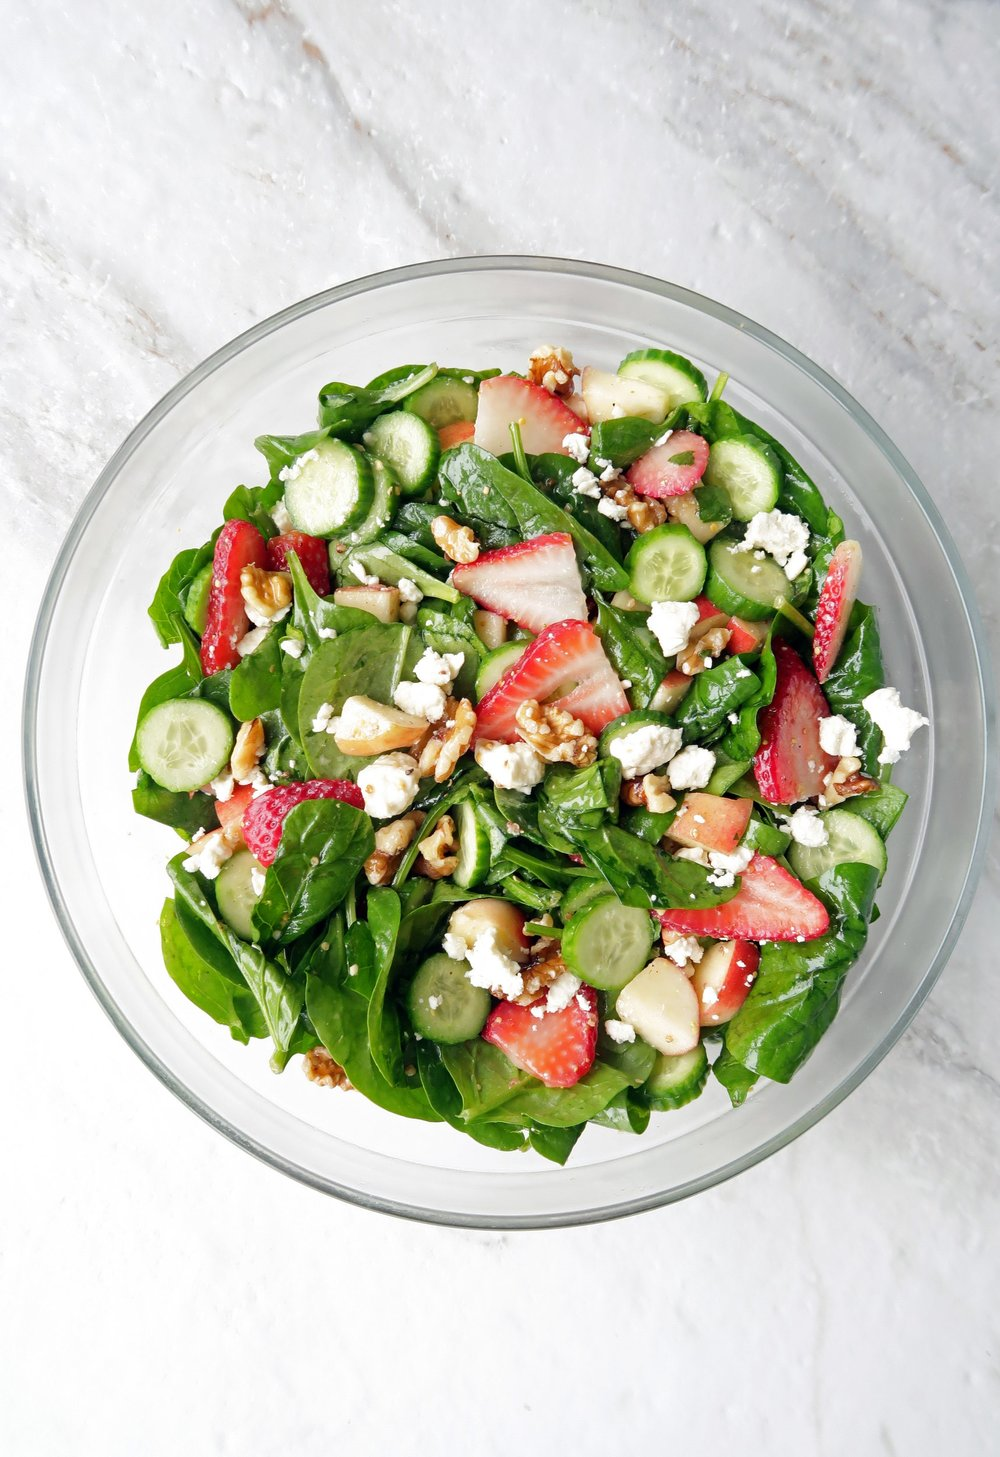 Summer Strawberry Cucumber Spinach Salad that's been tossed with Apple Cider Vinaigrette in a large glass bowl.